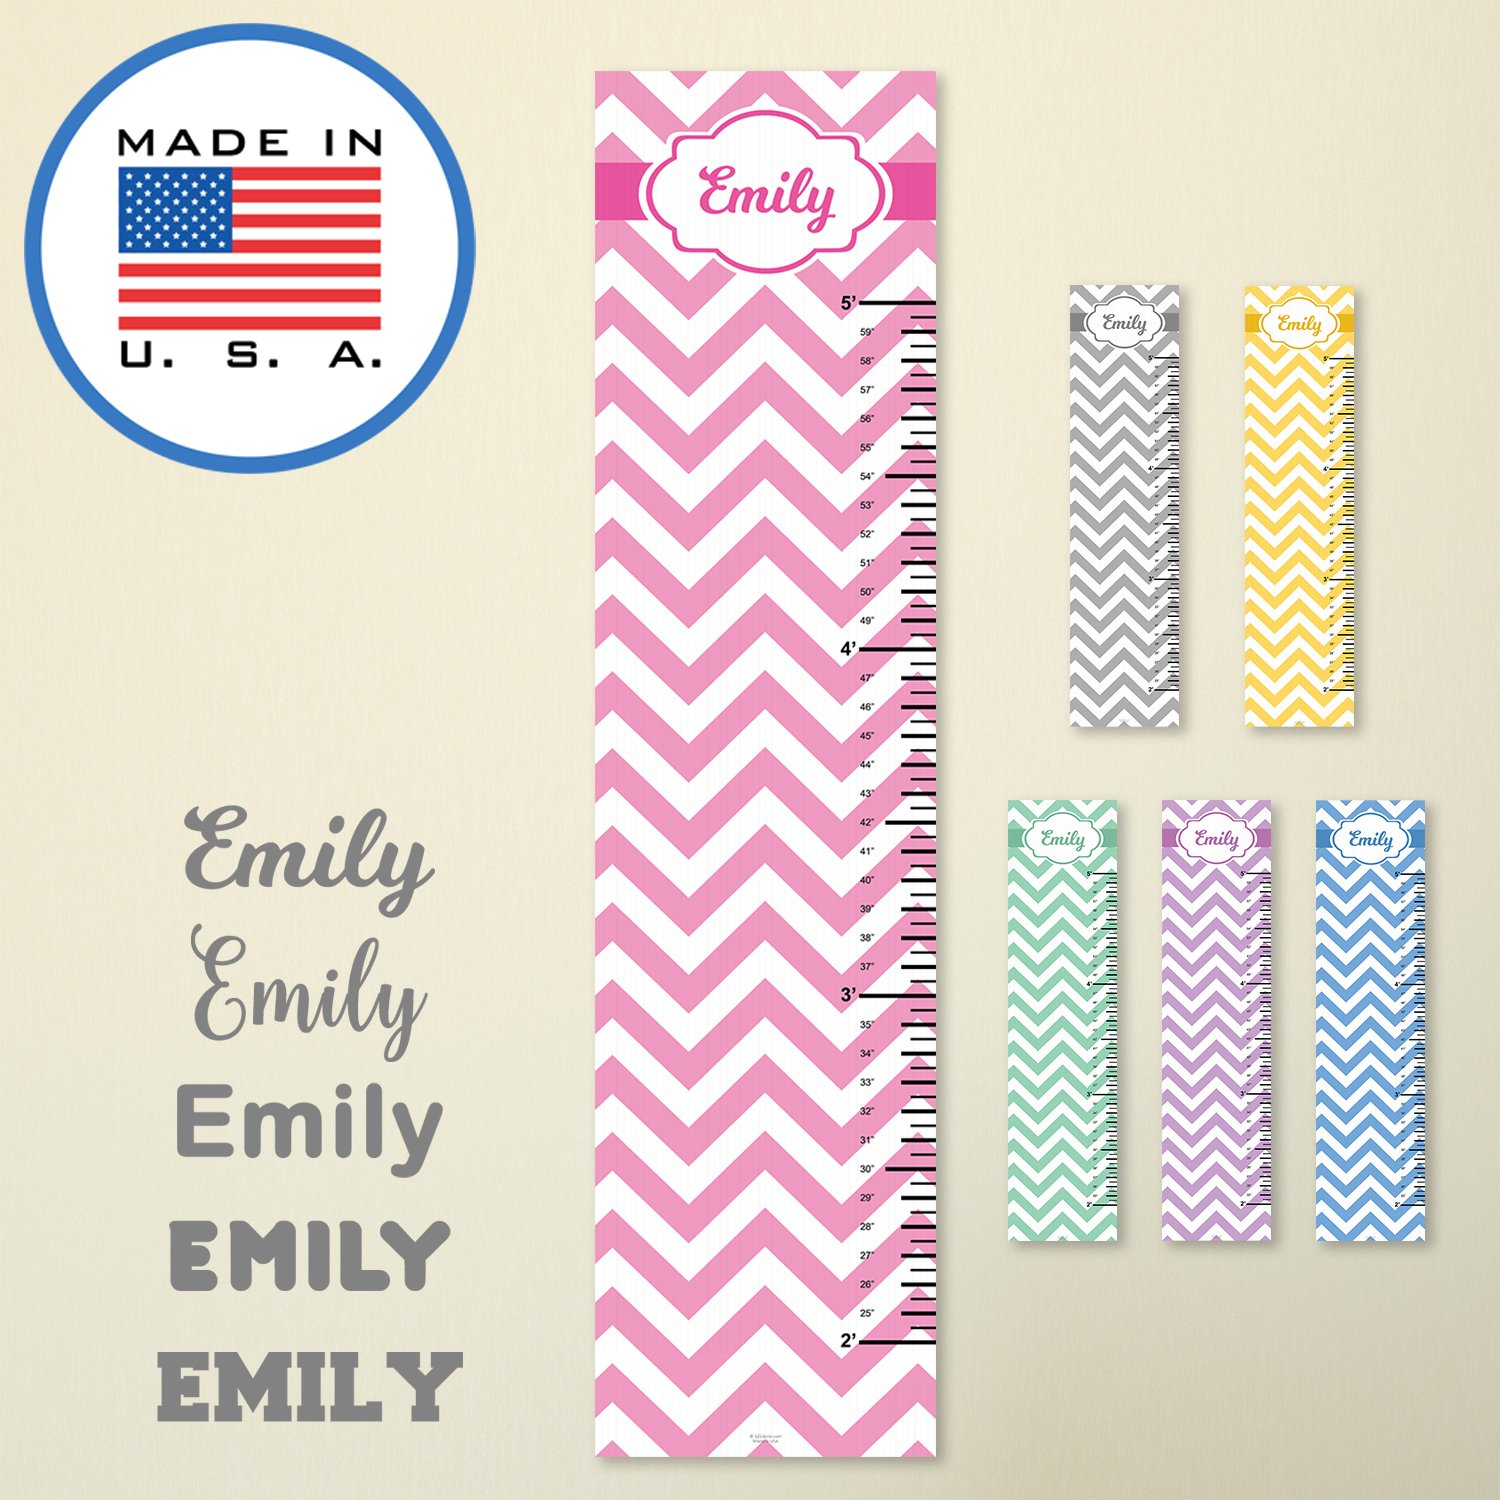 321Done Personalized Hanging Growth Chart, Gray Chevron with Name, Height Ruler Measurement, Vinyl Banner Nursery Wall Decor Baby, Made in USA VGC7001-A